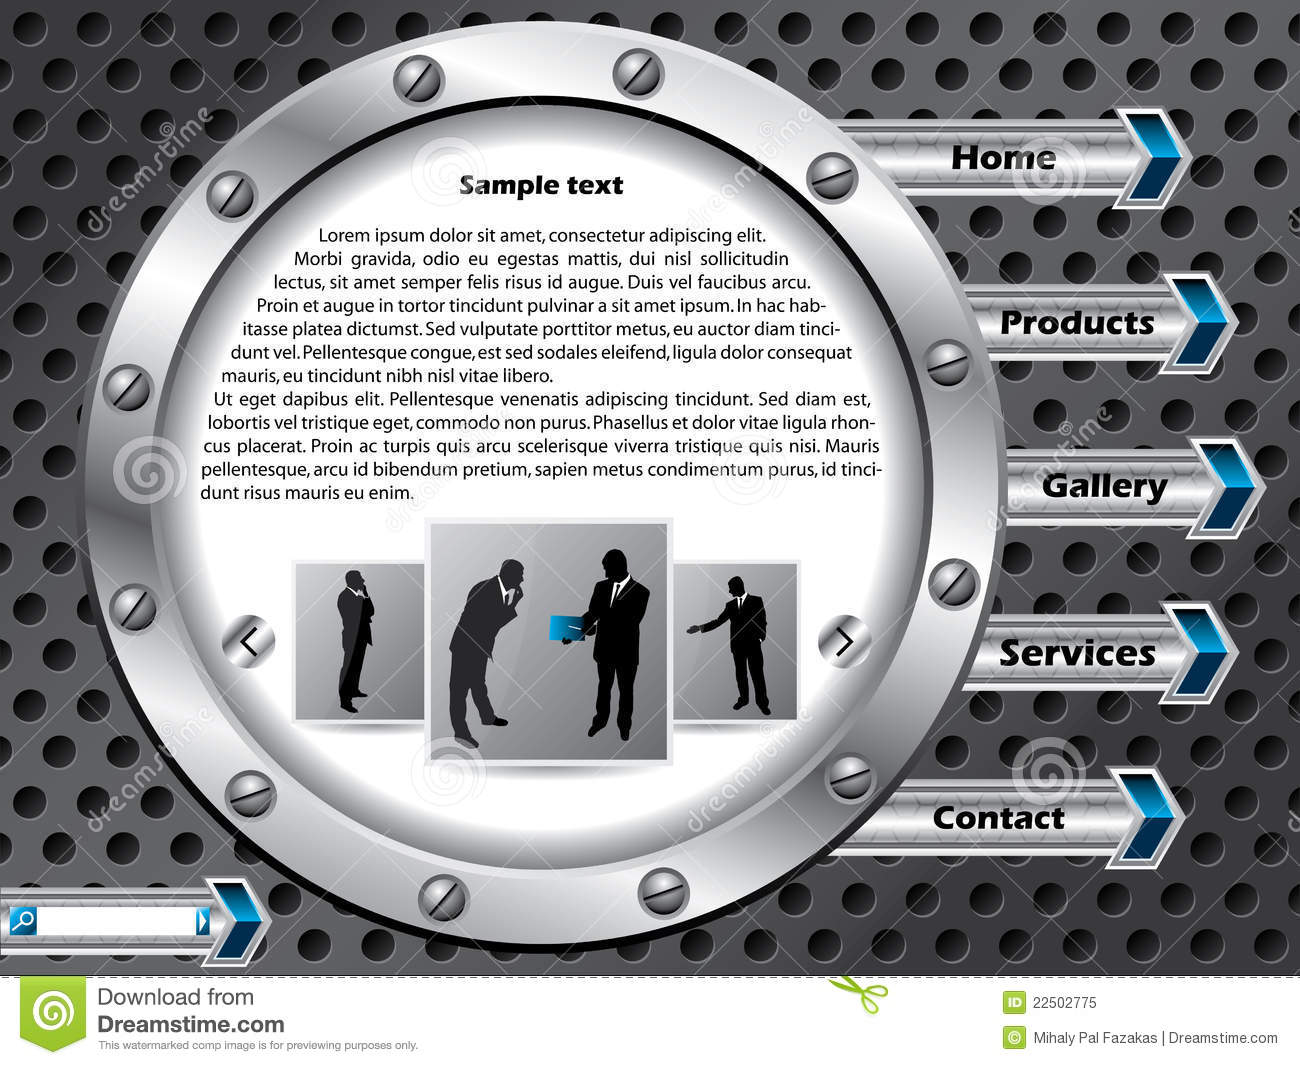 technology-web-template-design-22502775.jpg